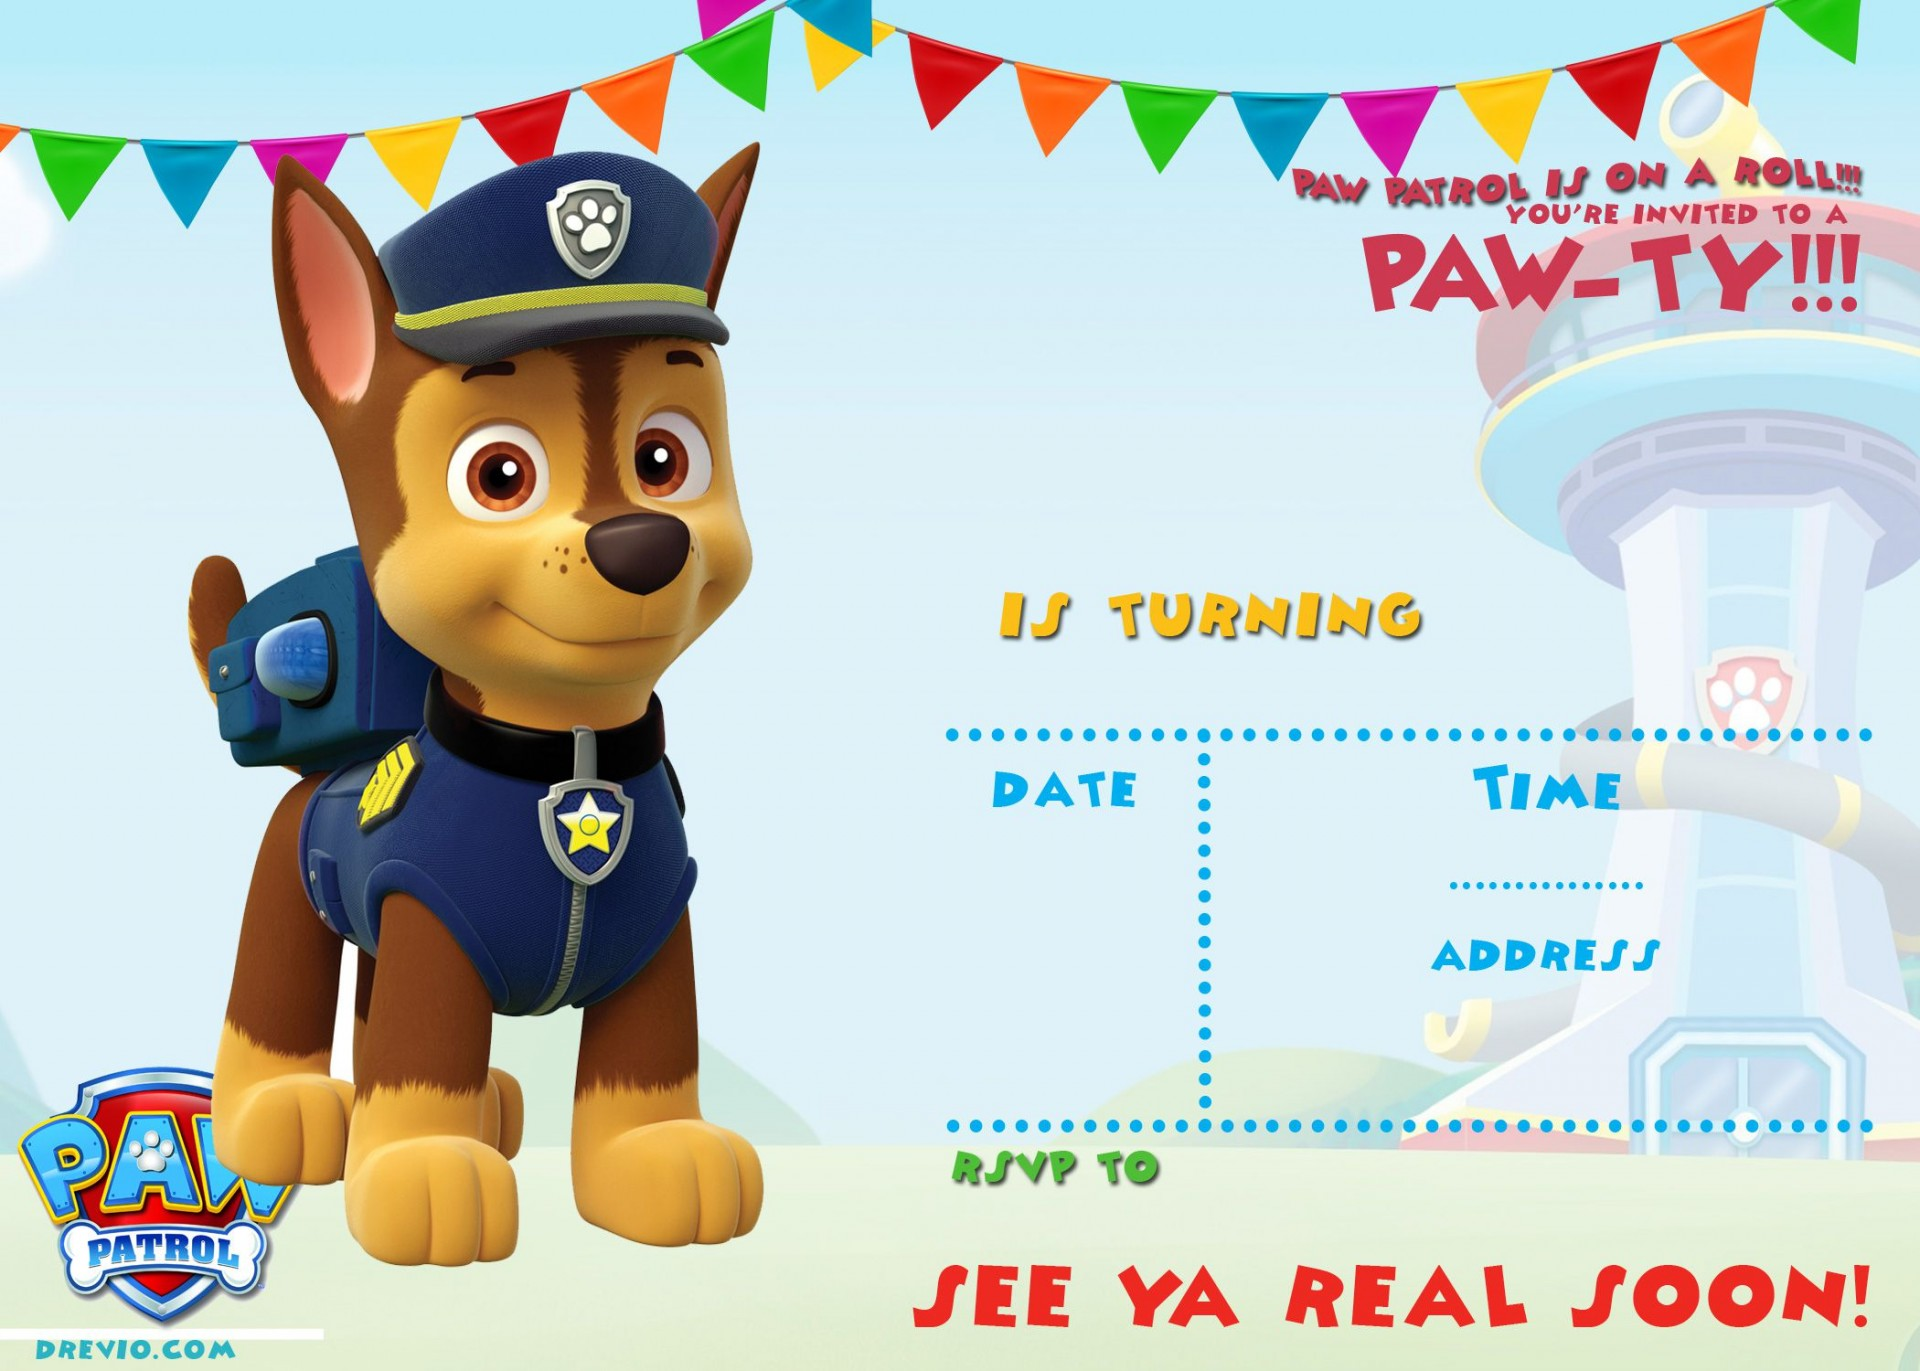 006 Staggering Paw Patrol Birthday Invitation Template Example  Party Invite Wording Skye Free1920